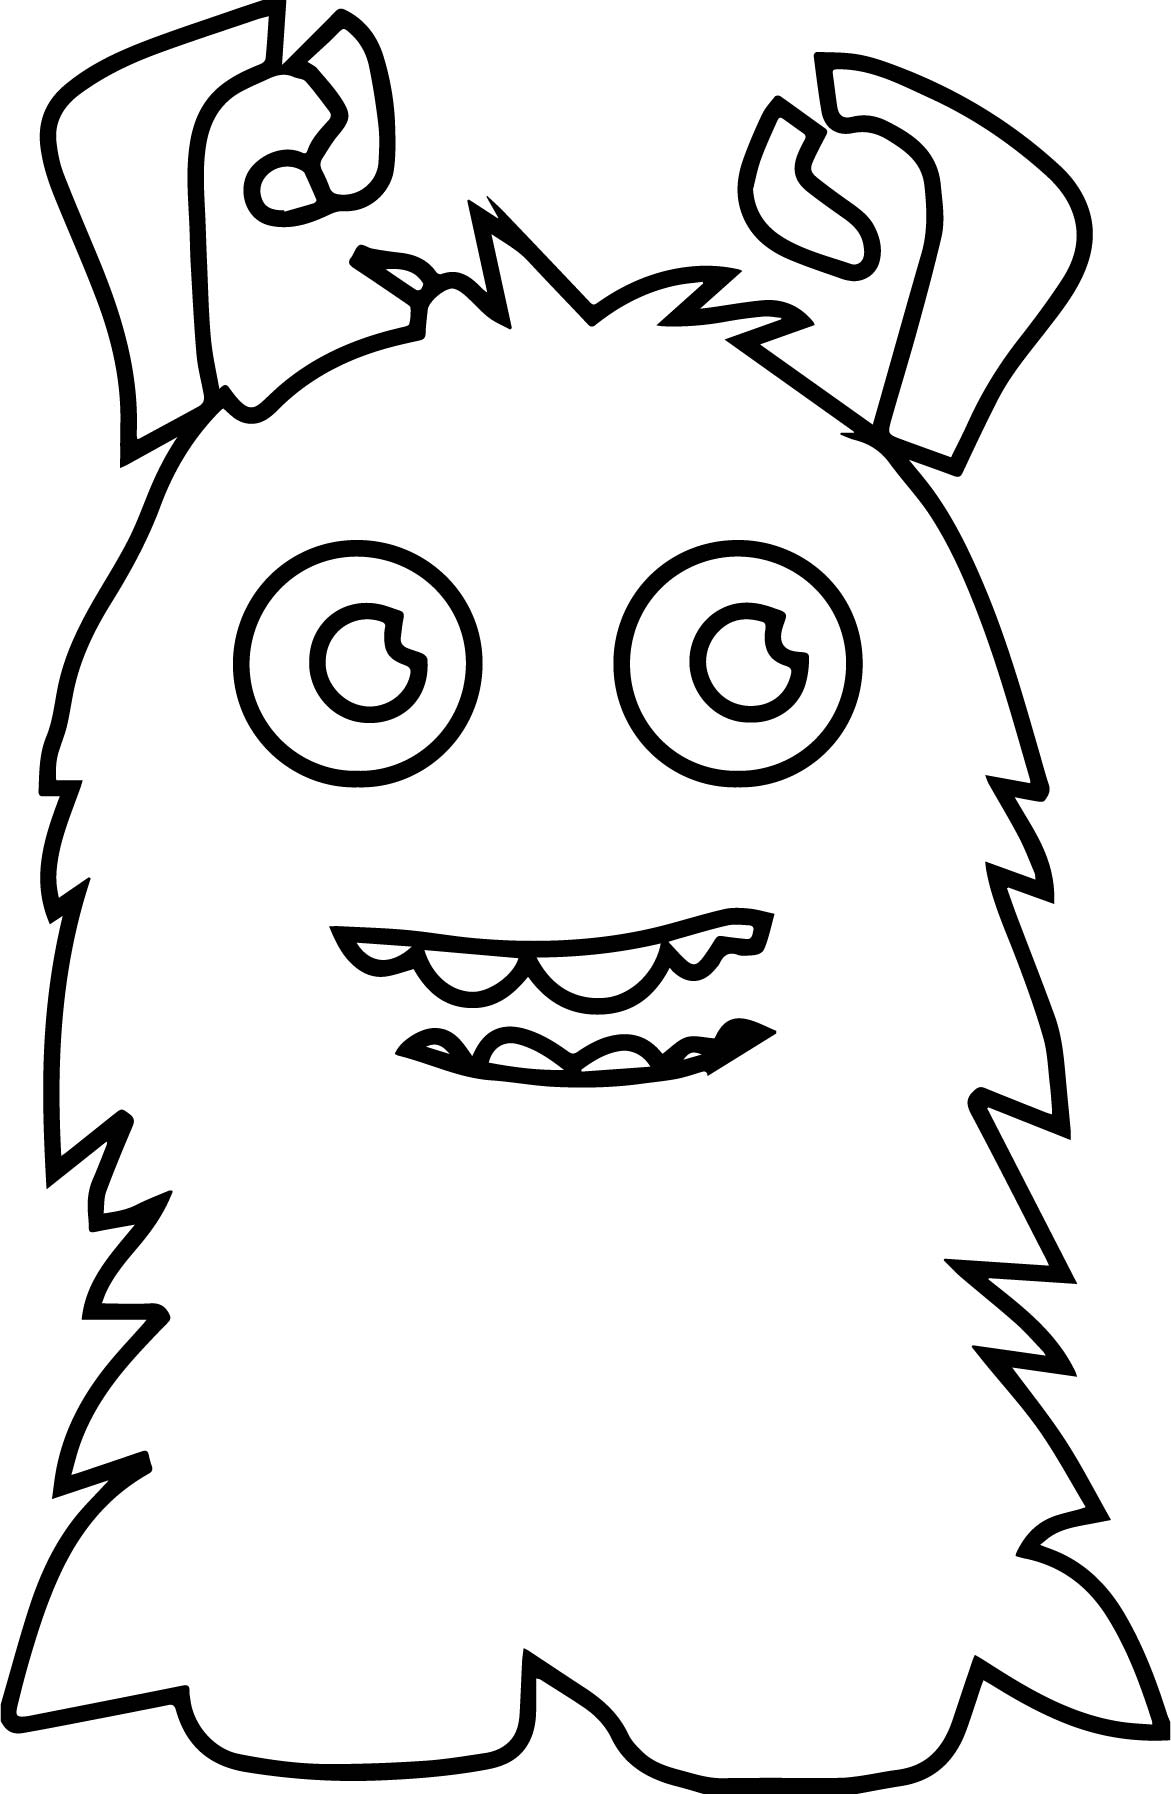 www coloring page com - mounstritos on monsters coloring page